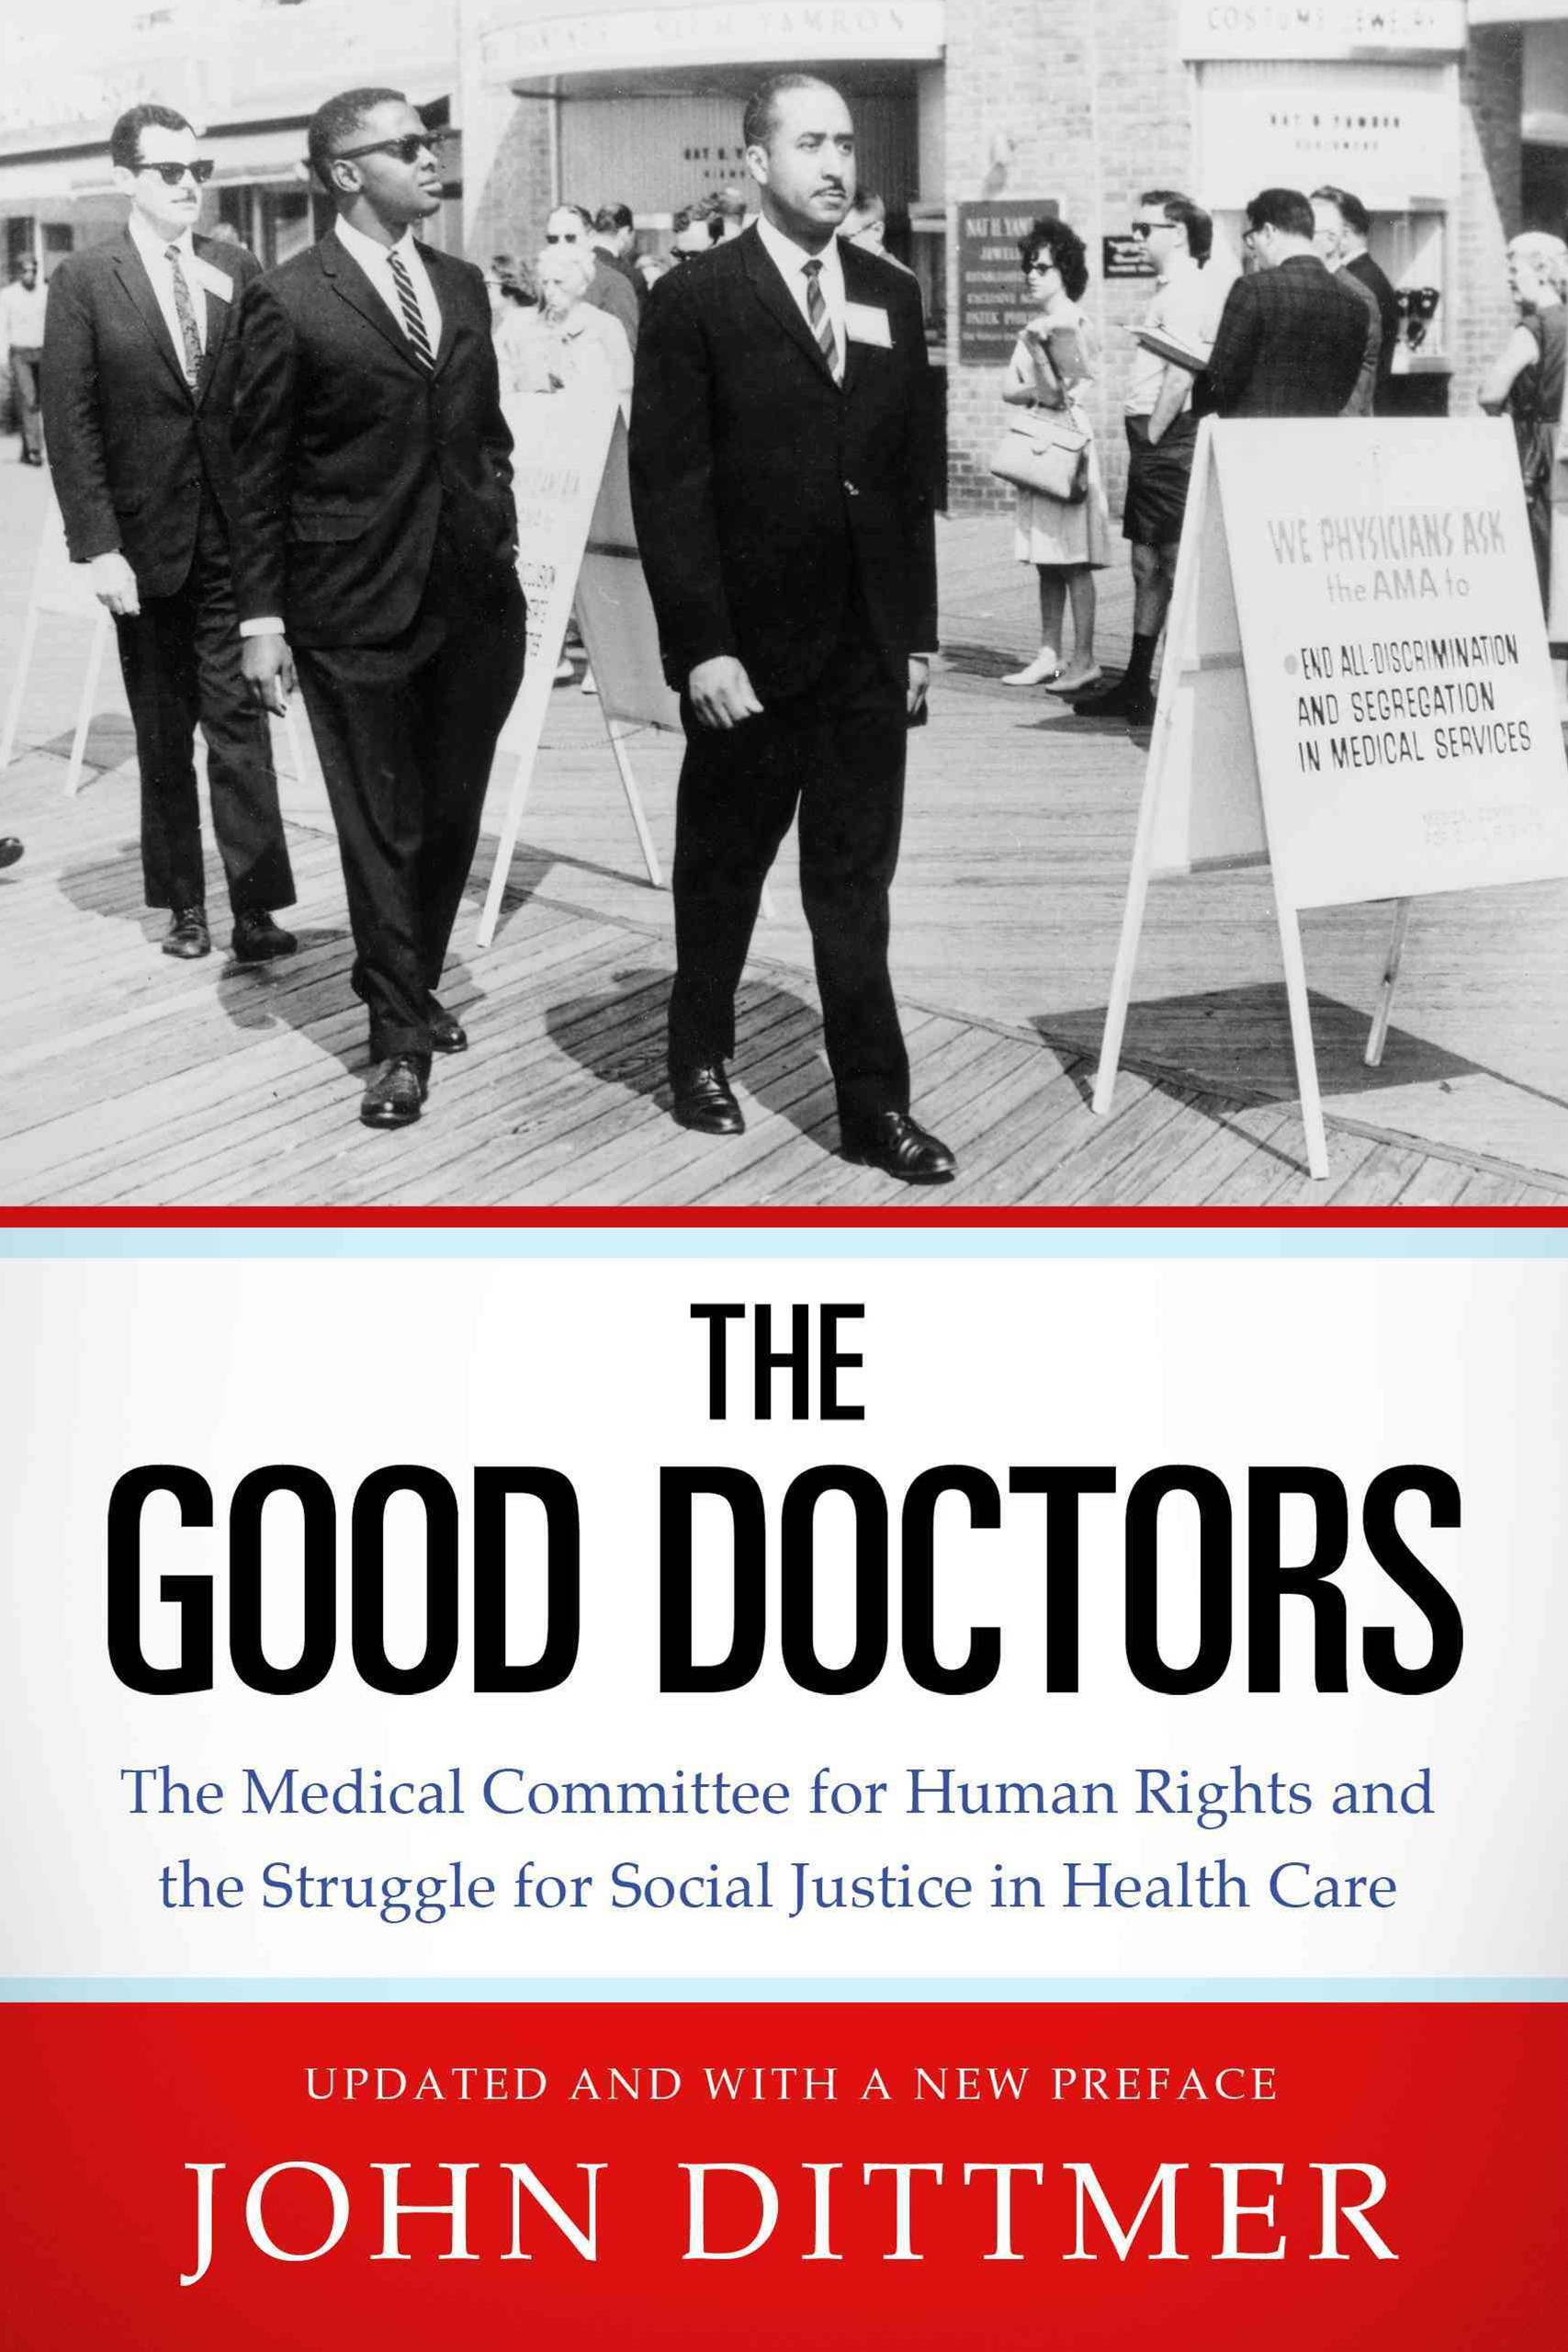 The Good Doctors